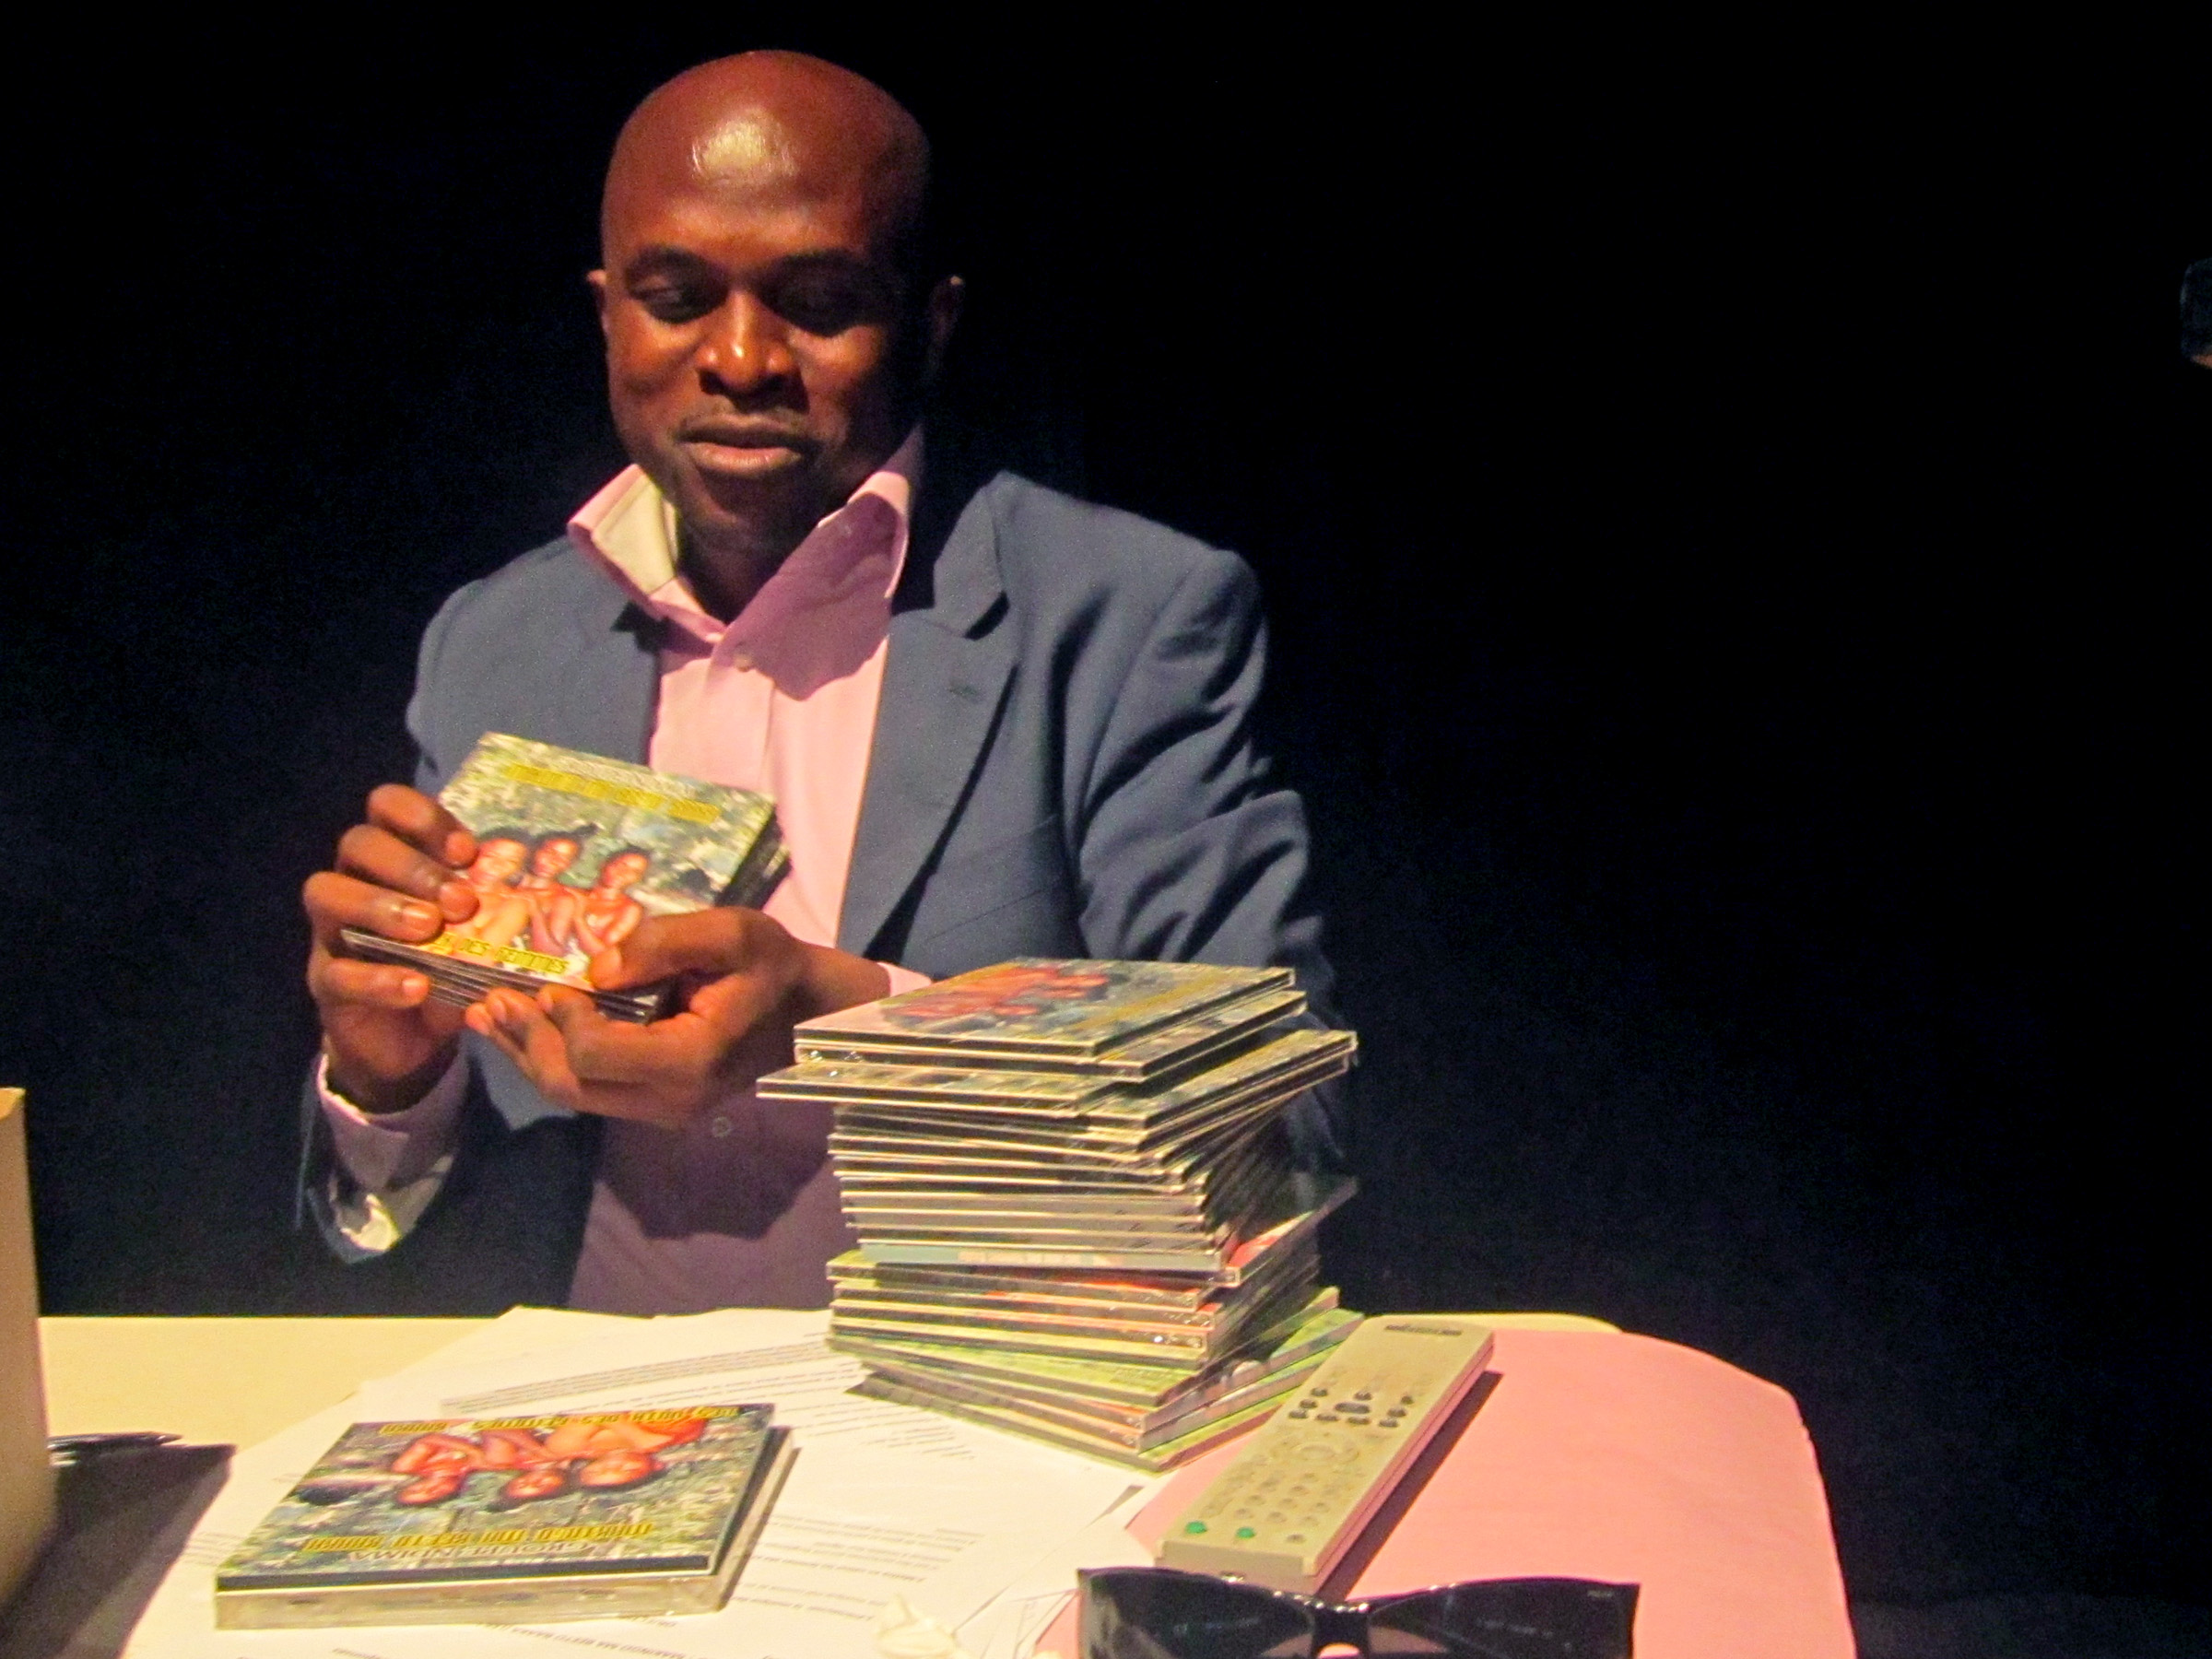 Congolese ethnologist displays a recently-released CD he produced of songs sung by the indigenous Baka community